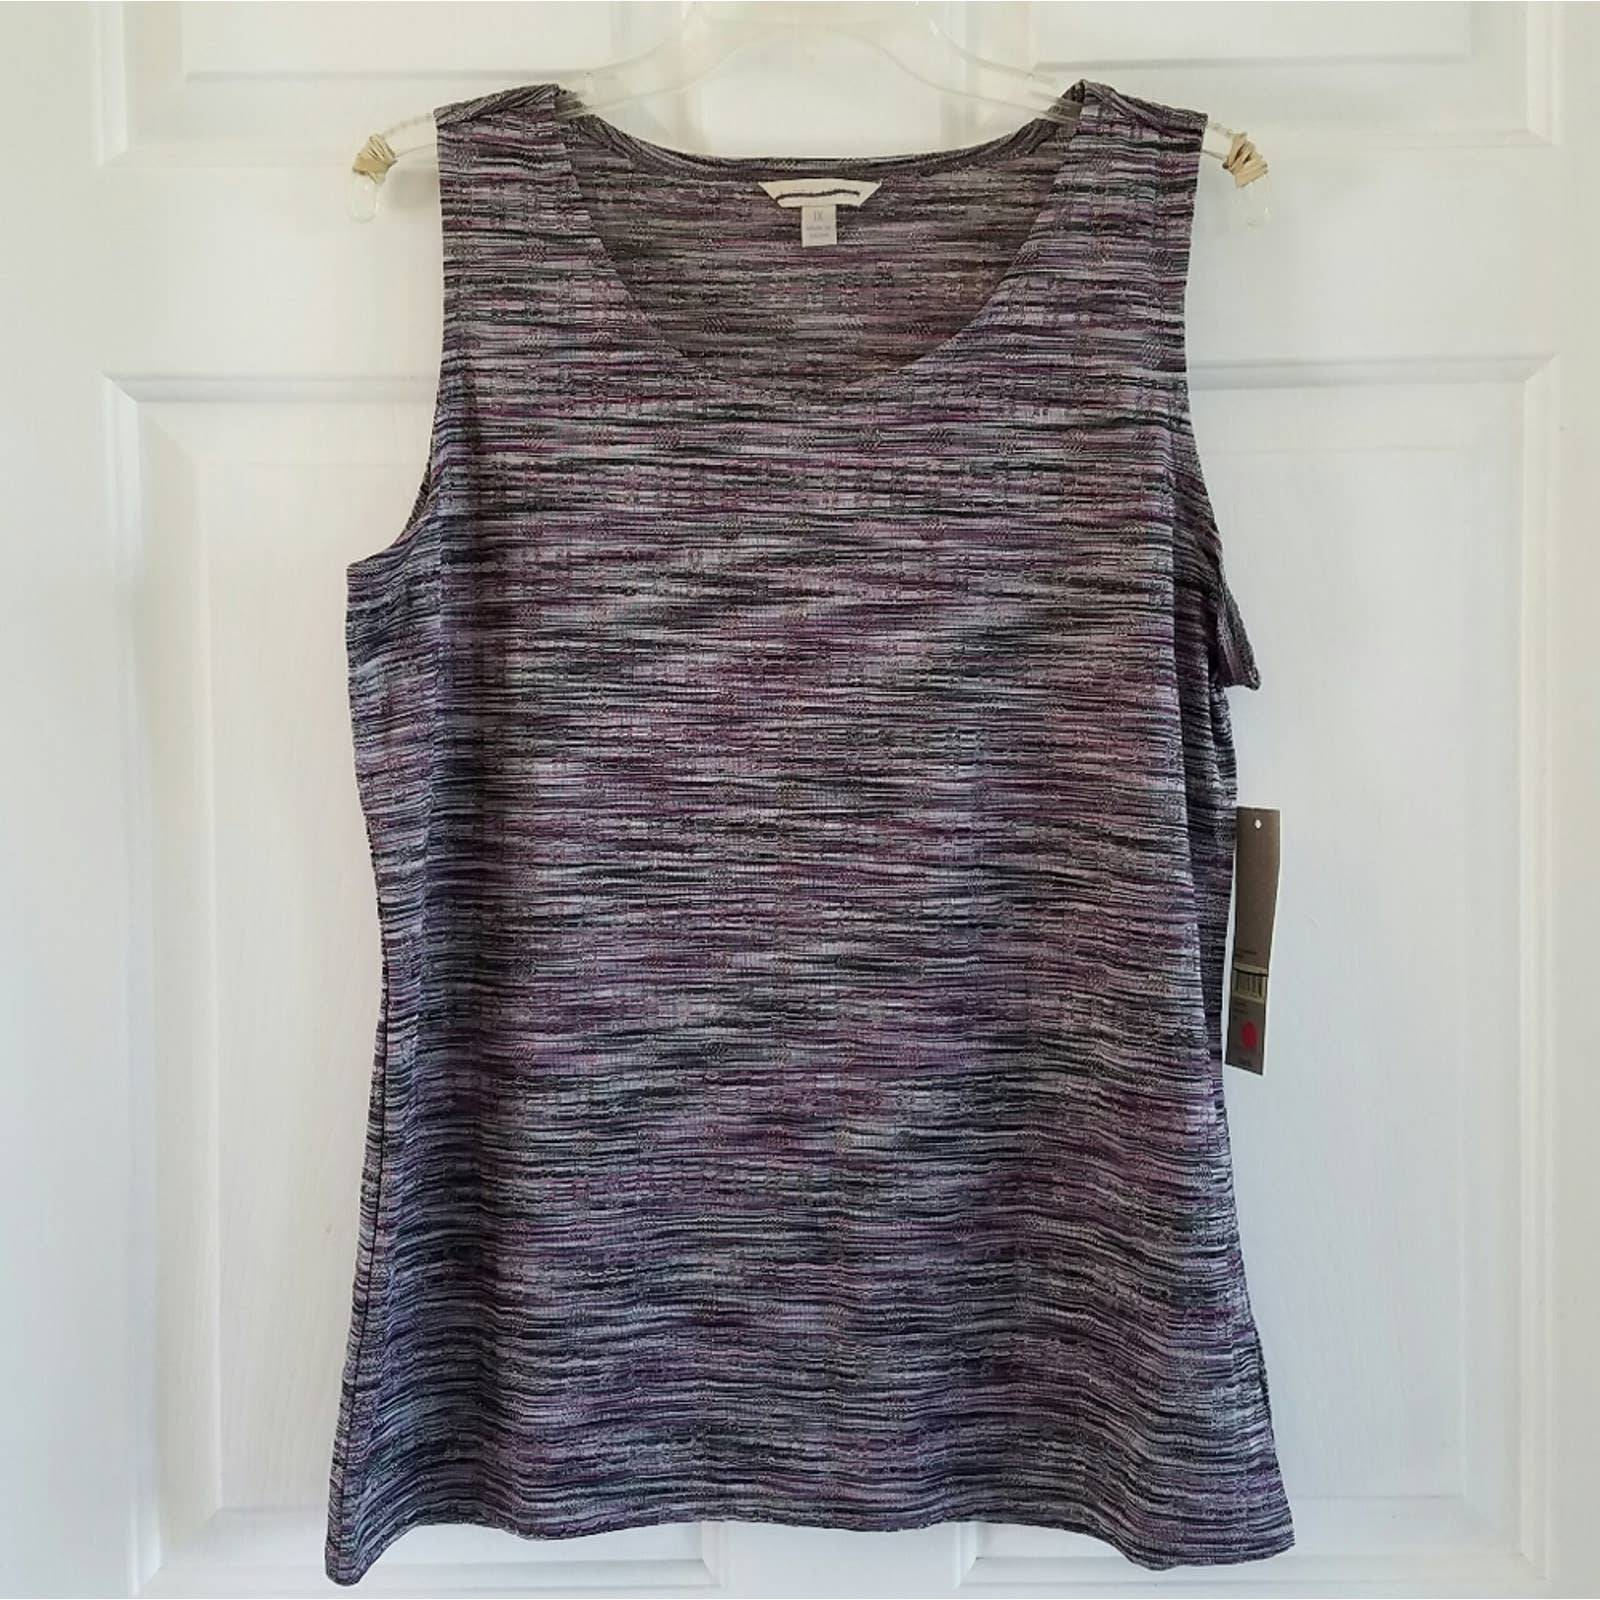 Laura Ashley/ dressy tank top